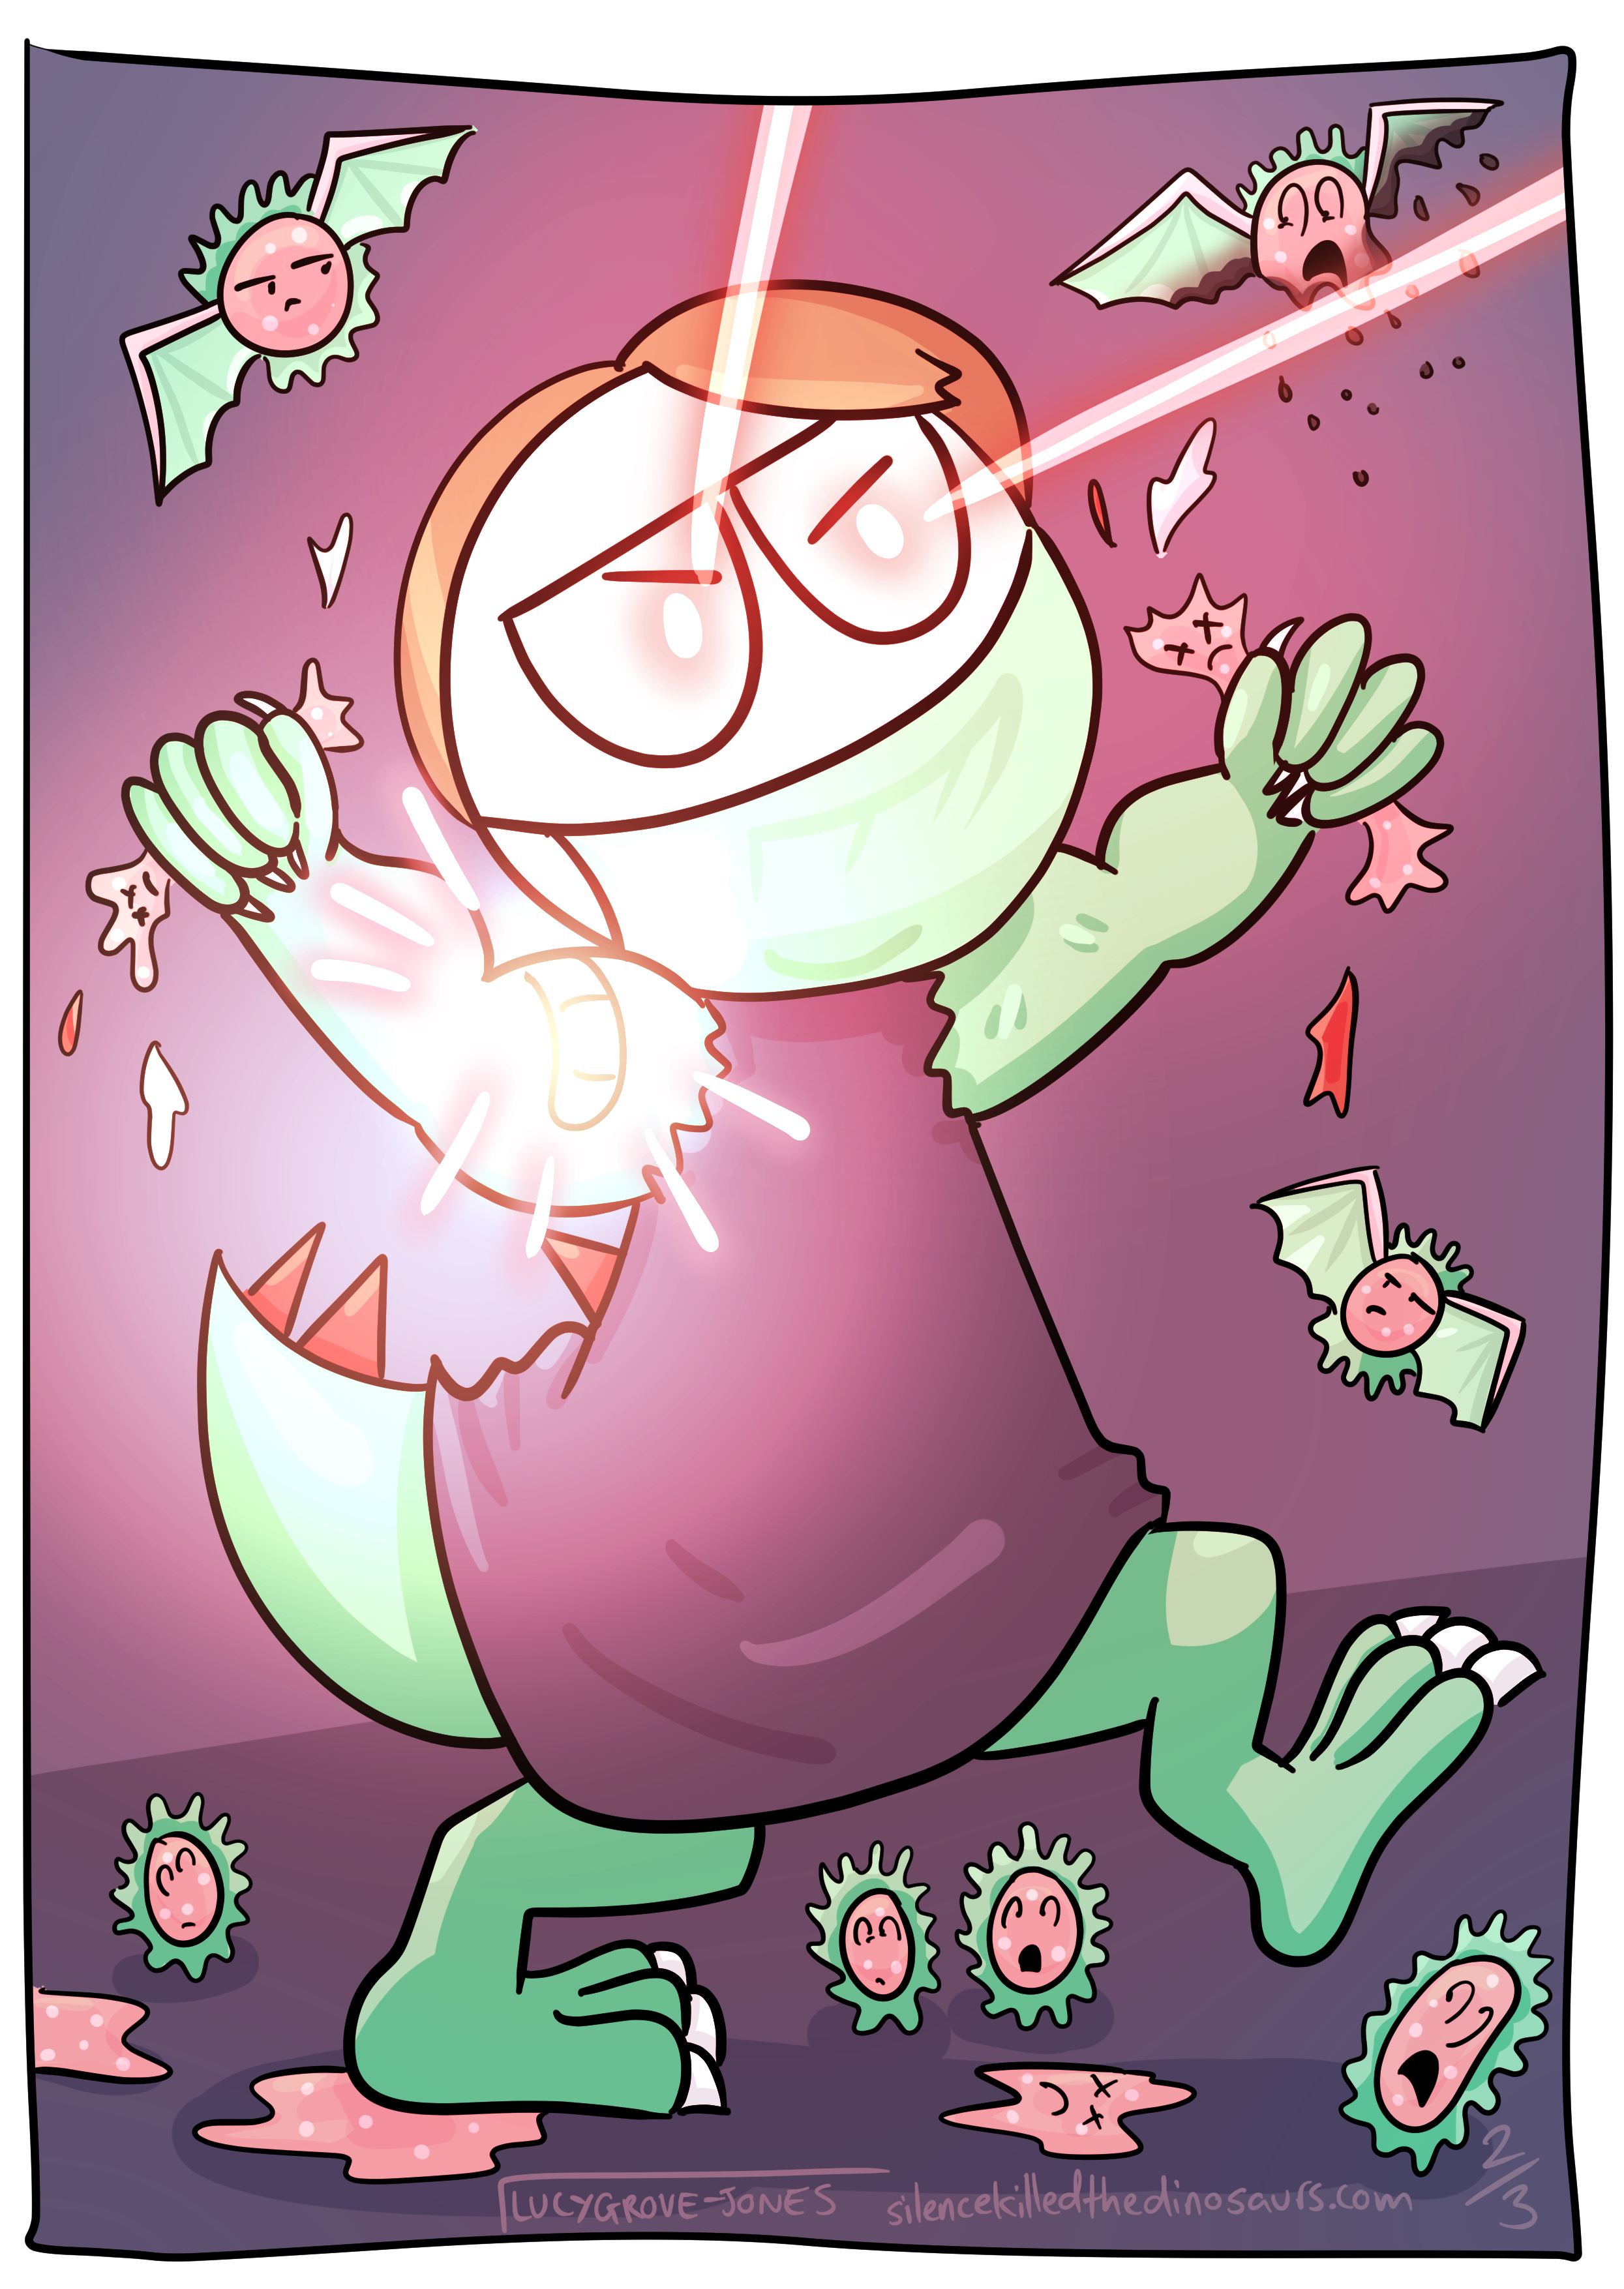 Full page comic. A Lucy-dinosaur mutant hybrid rampages through coronavirus cells. She stomps them and crushes them in her fists. She shoots down airborne virus cells with laser eyes. Her bandaid glow is at its most intense.